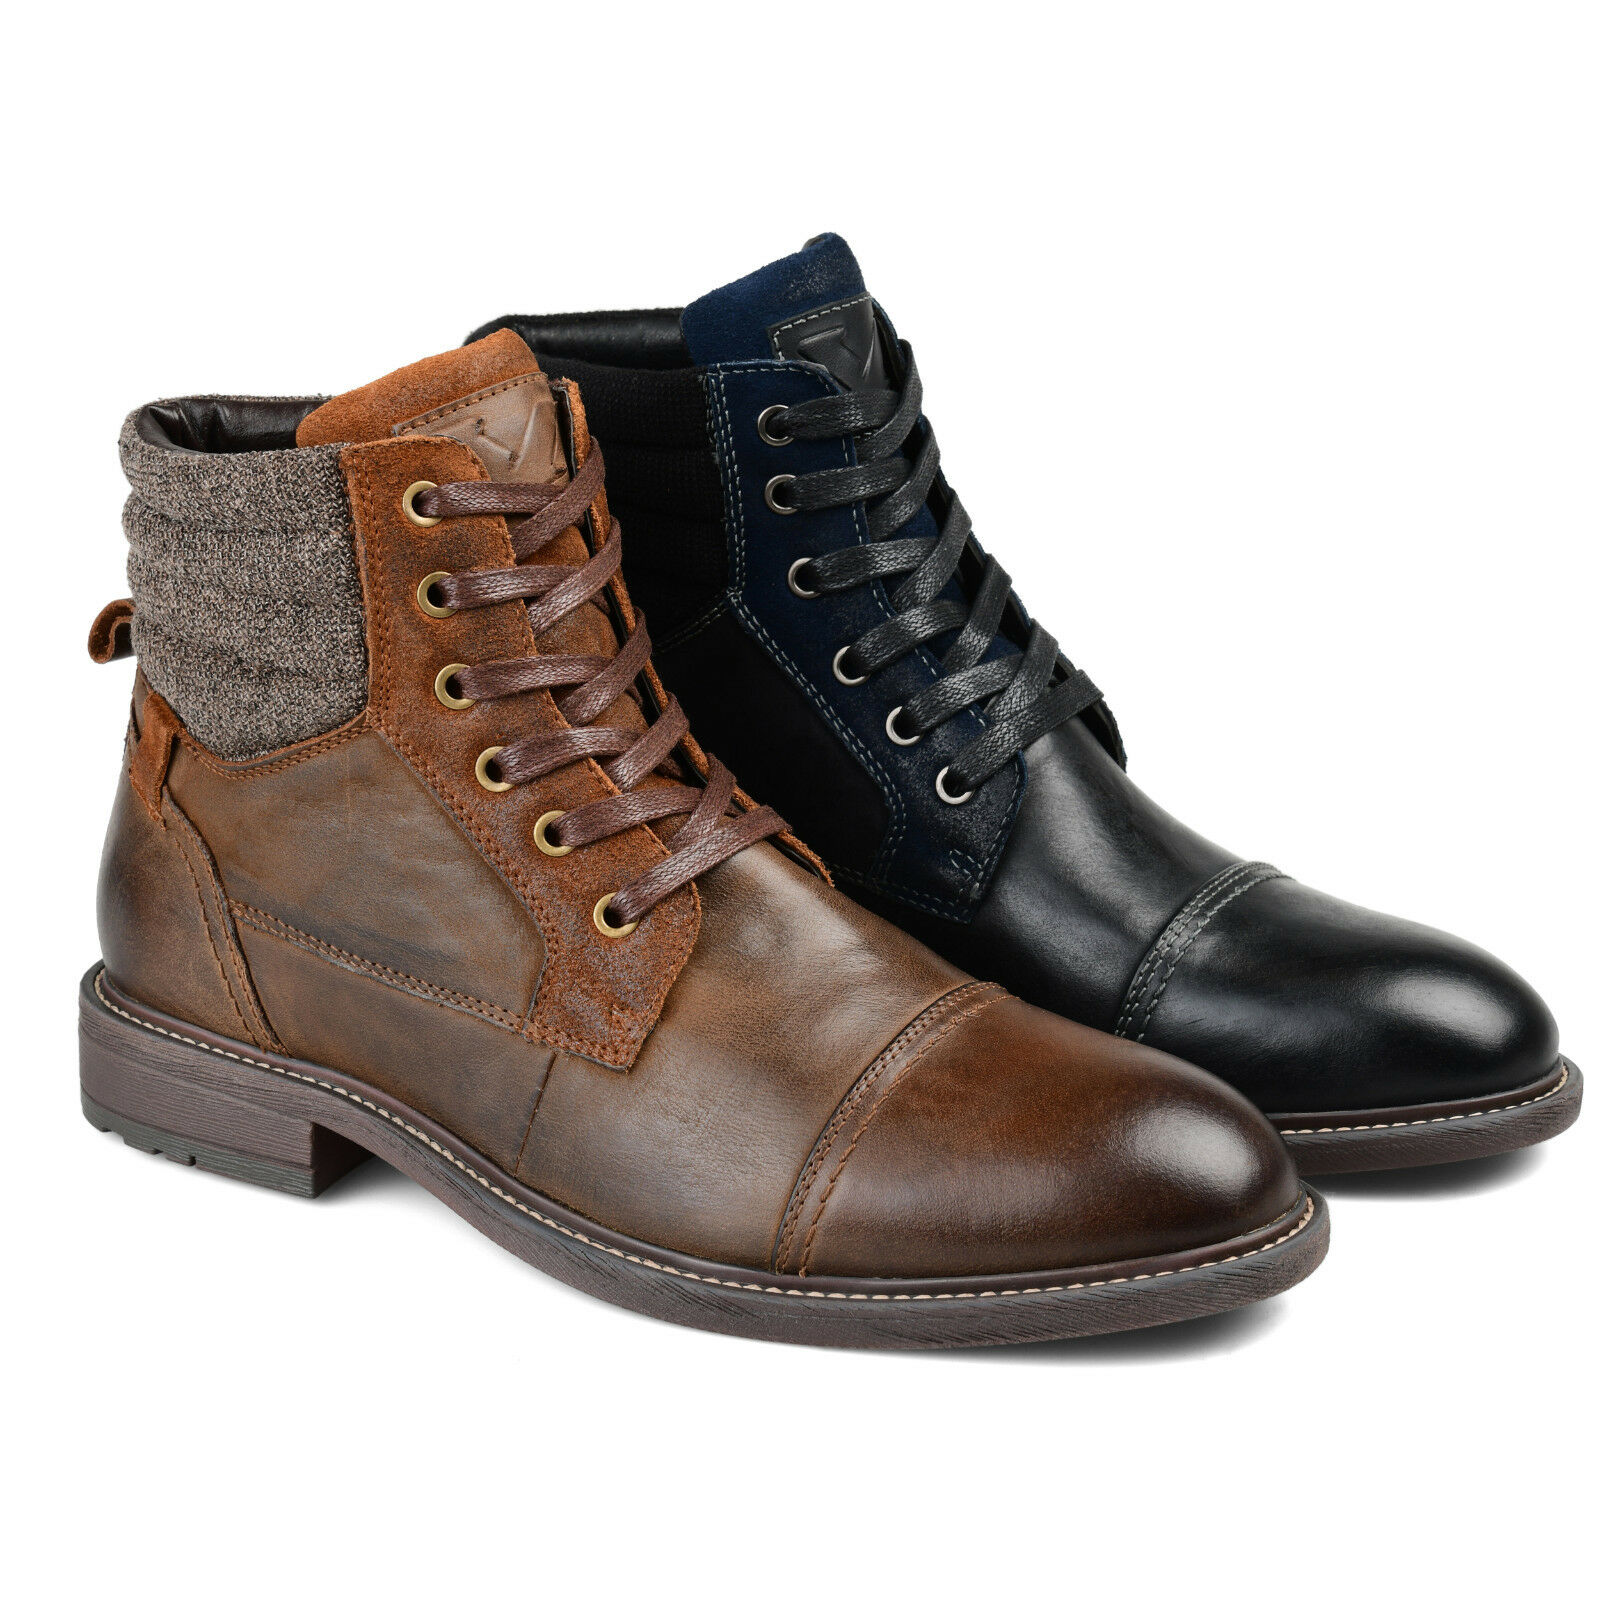 Daxx Mens Cap Toe Lace-up Ankle Boot